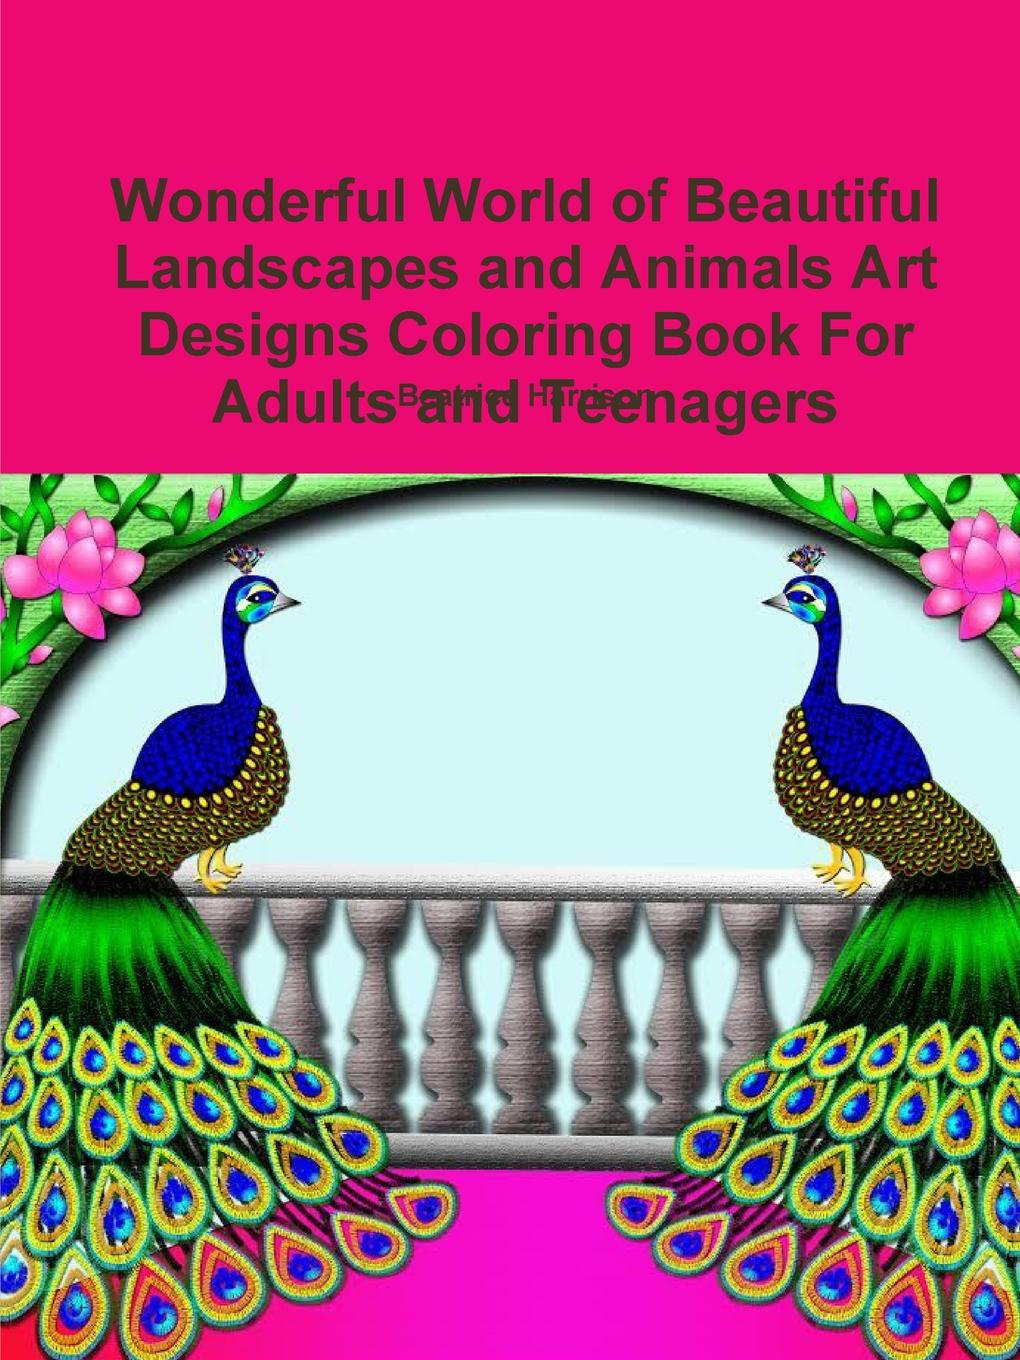 Beatrice Harrison Wonderful World of Beautiful Landscapes and Animals Art Designs Coloring Book For Adults and Teenagers colorful hexagon fidget spinner adhd stress relief toy relaxation gift for adults